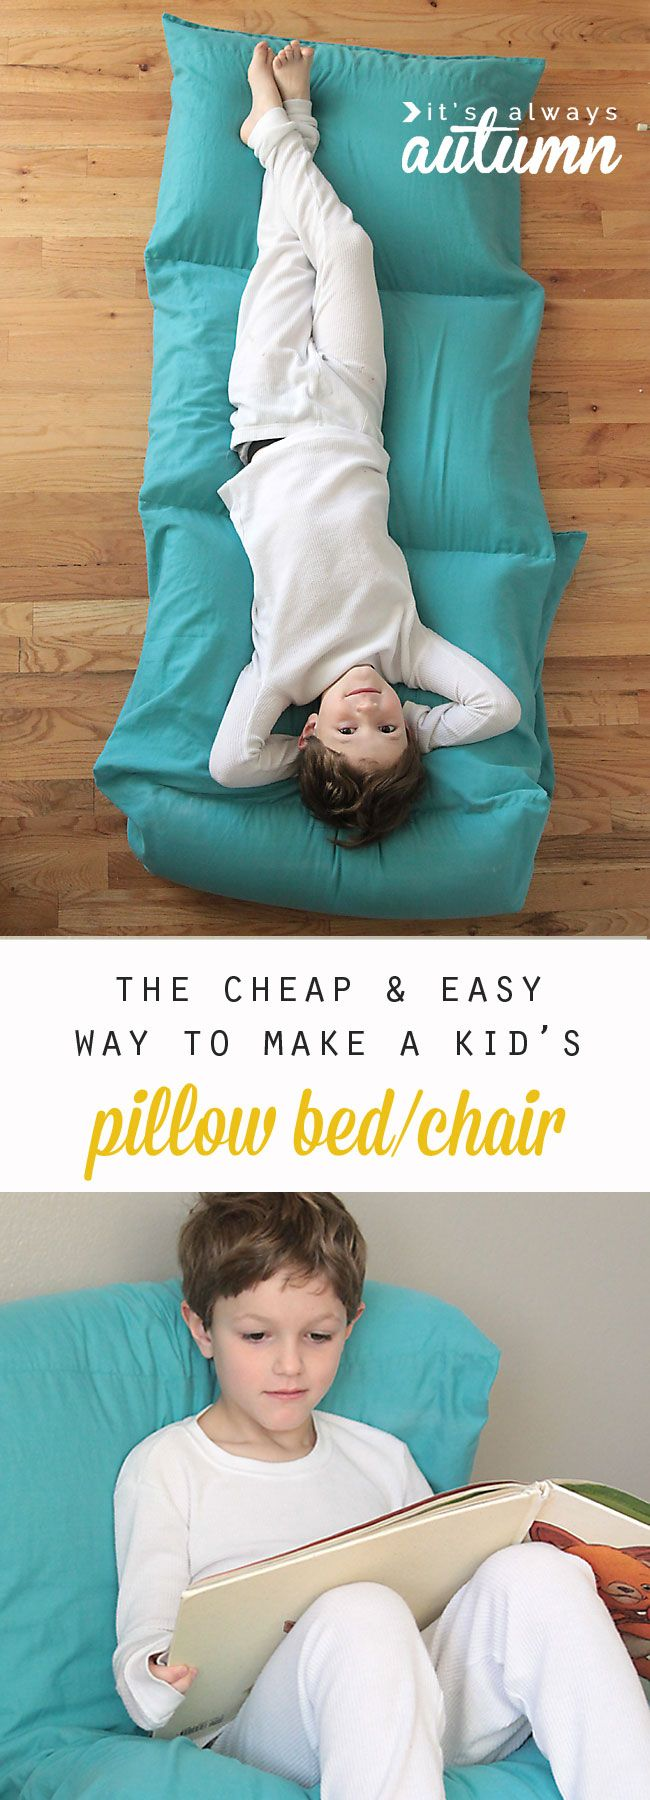 so cute! the cheapest and easiest way to make a kids' pillow bed. free sewing pattern and tutorial #itsalwaysautumn #pillowbed #portablebed #kidsbed